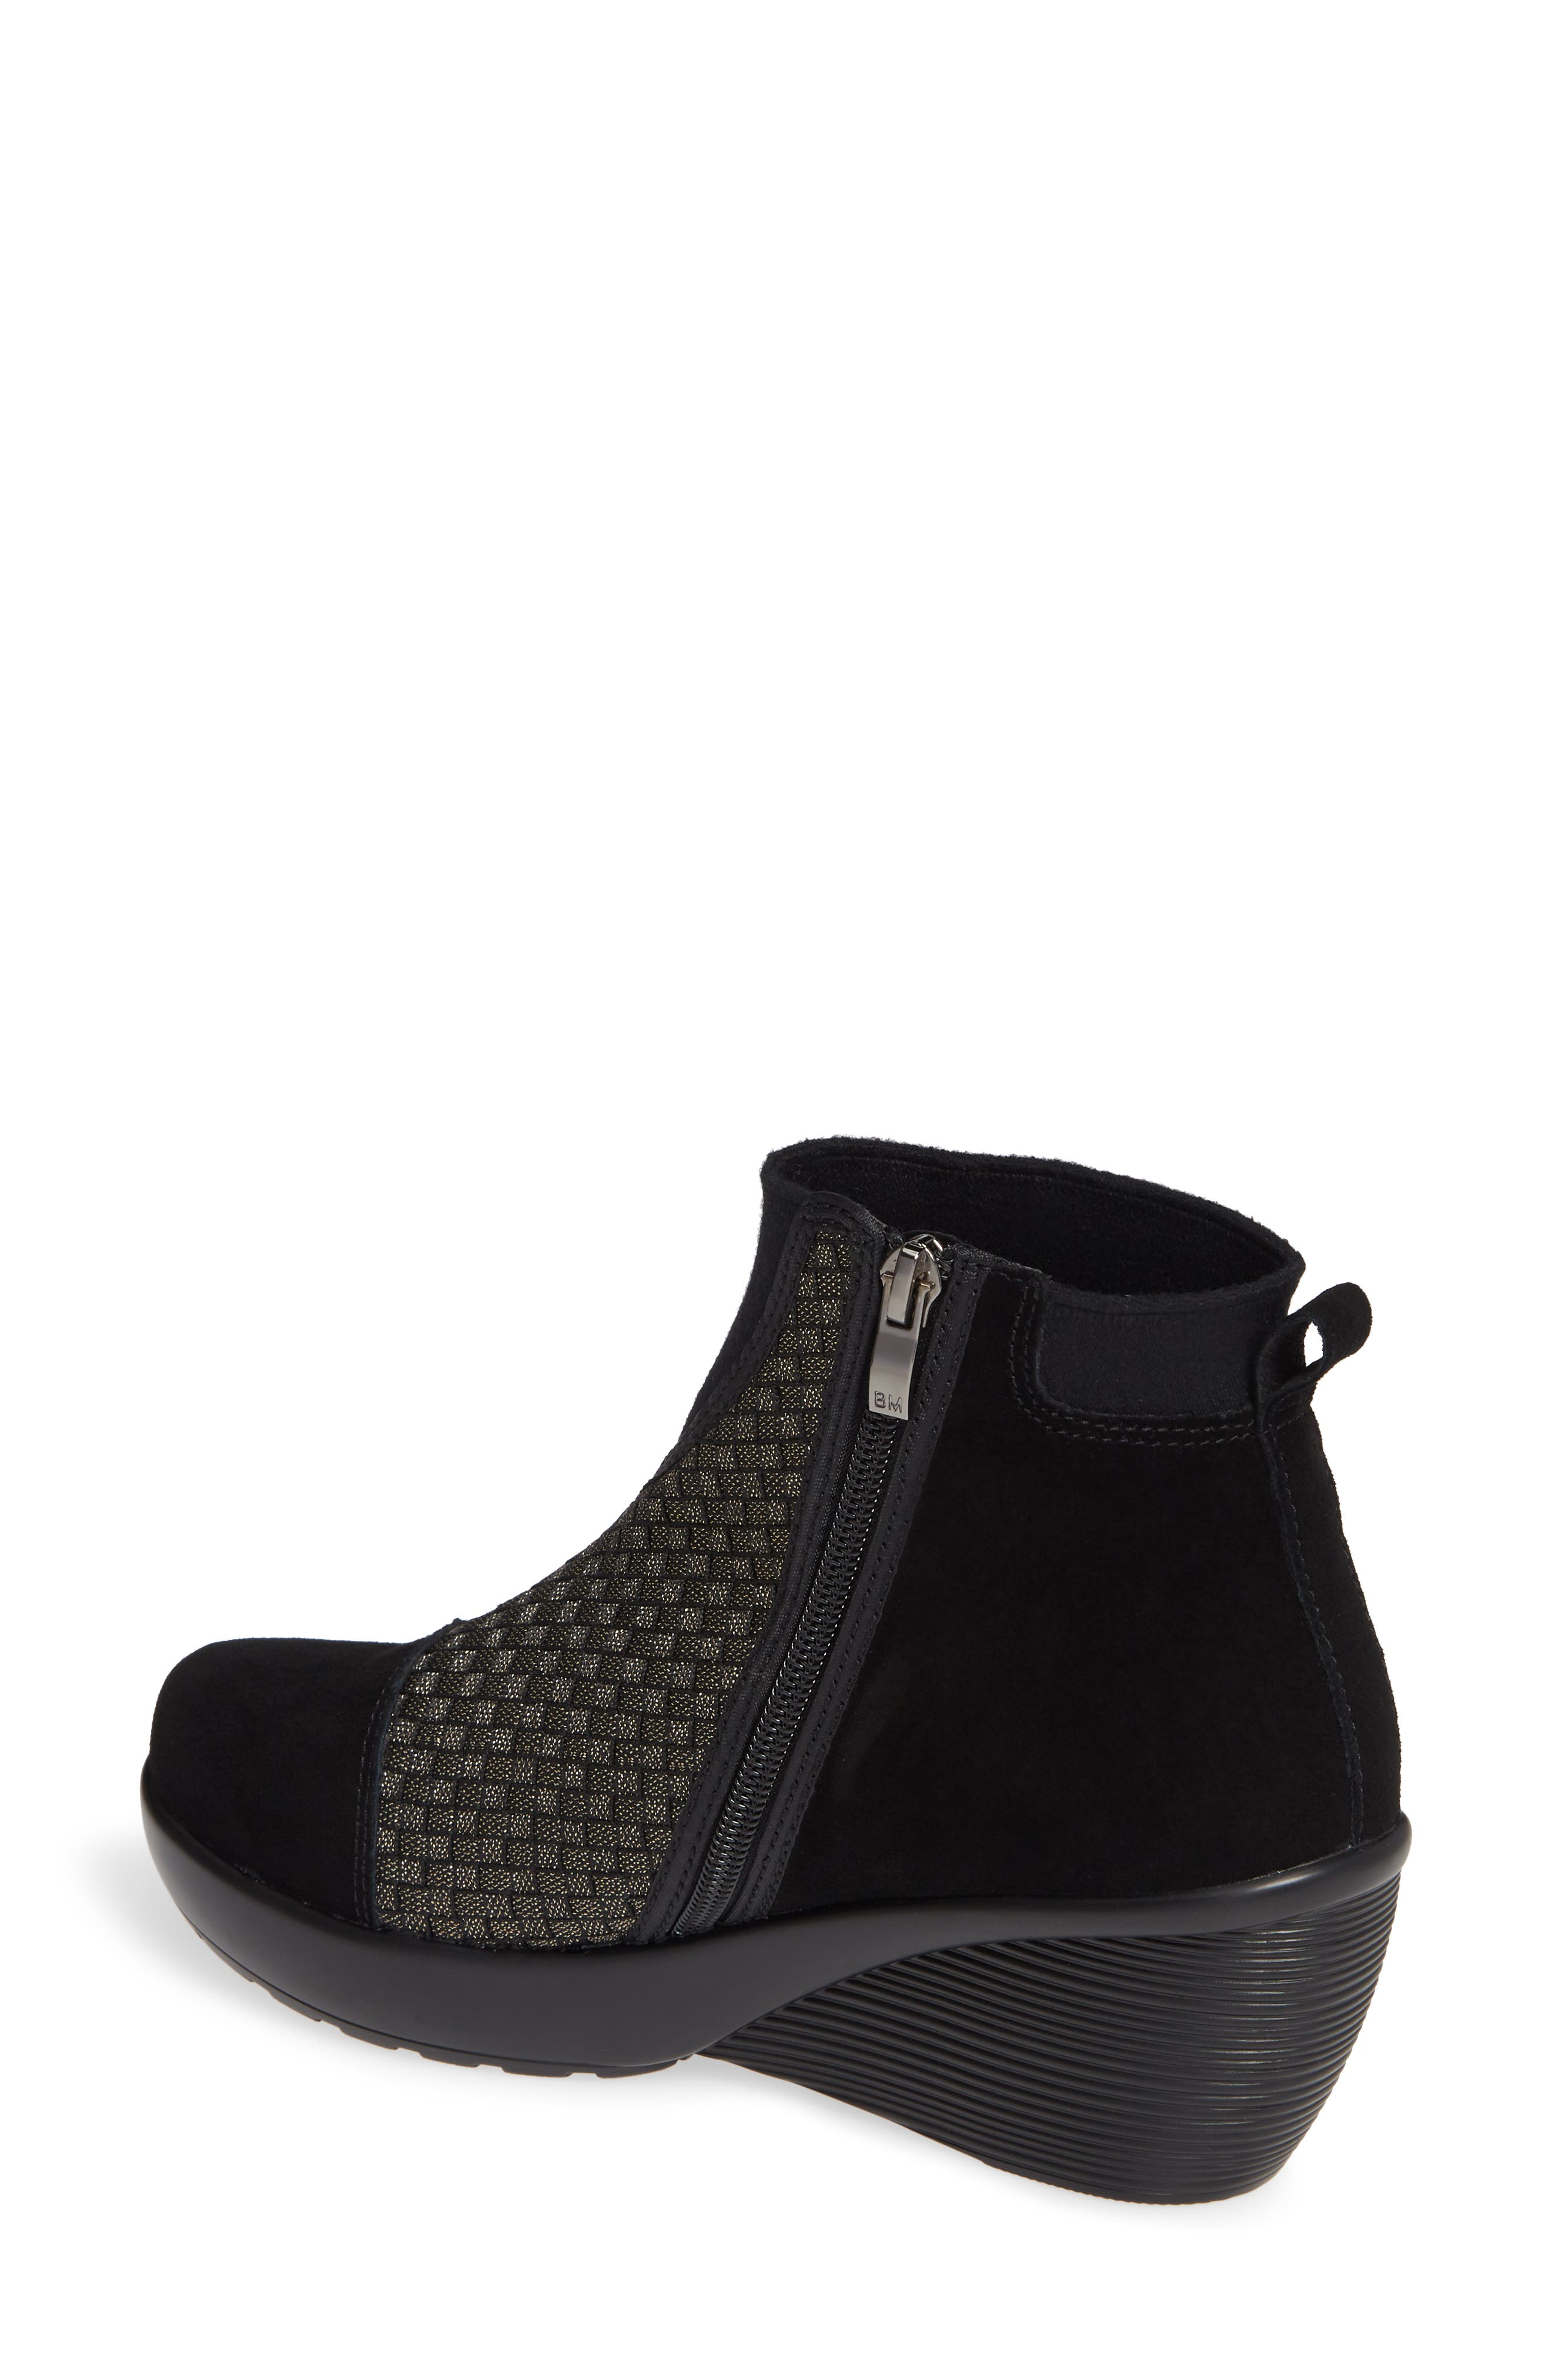 Zoe Wedge Bootie,                             Alternate thumbnail 2, color,                             GOLD BLACK SHIMMER LEATHER